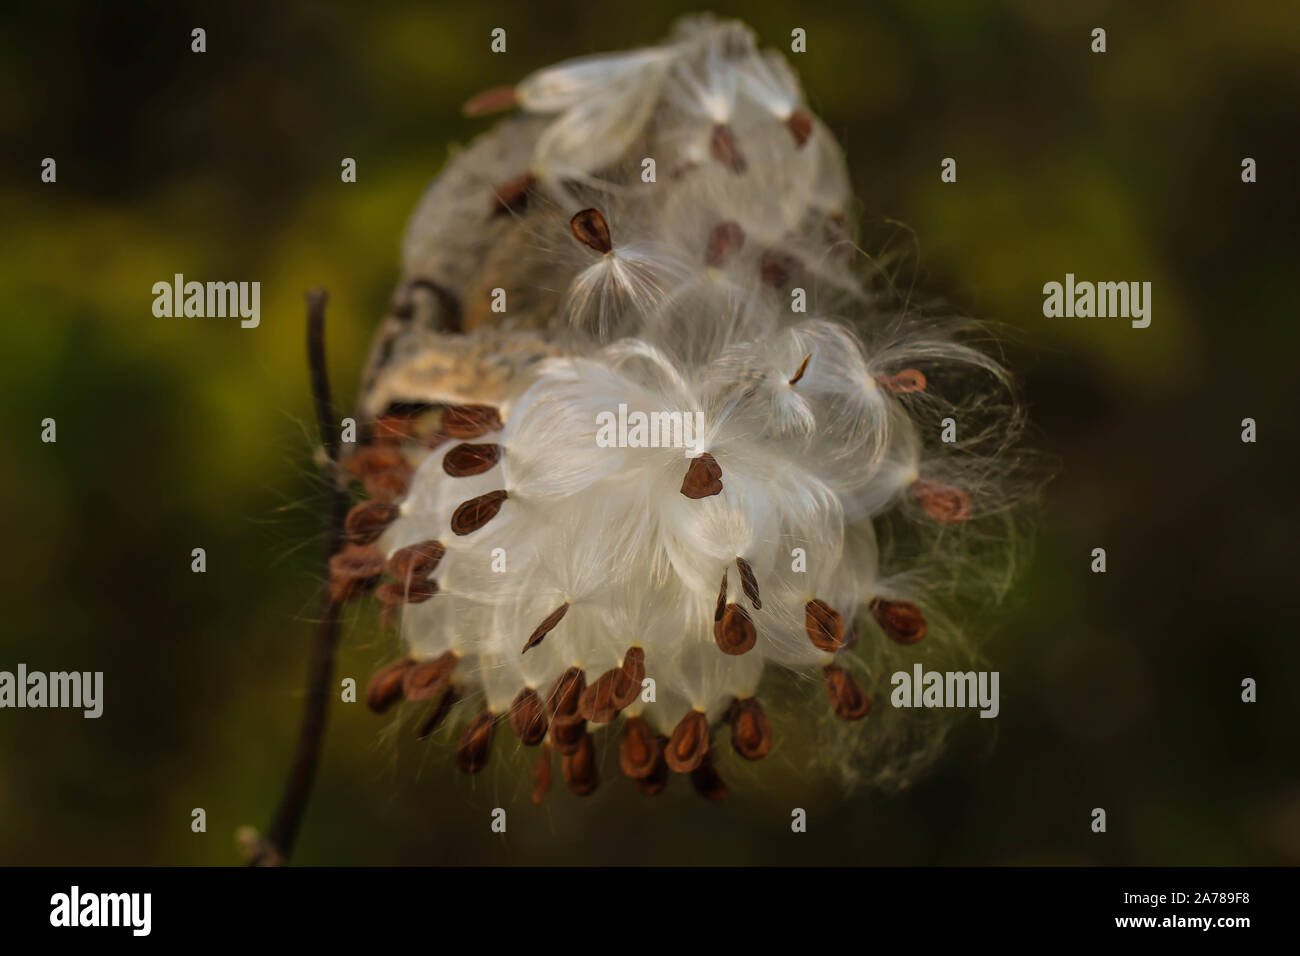 Fluffy white hairy seeds of common milkweed / Asclepias syriaca, invasive plant in the Subotica Sand in Serbia Stock Photo